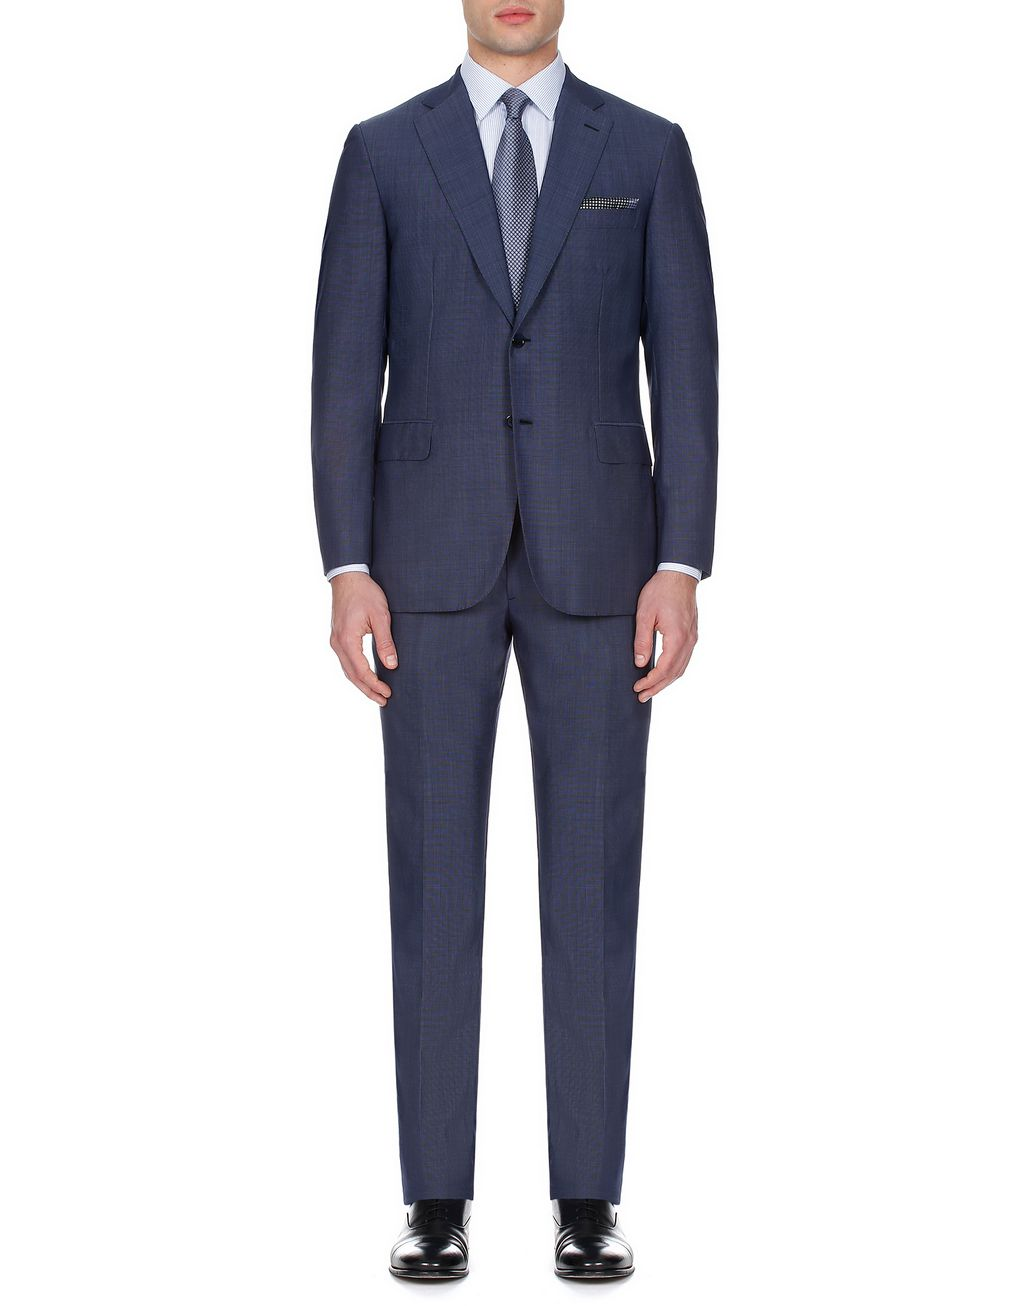 BRIONI Costume Brunico bleu marine avec motif grisaille miniature Suits & Jackets [*** pickupInStoreShippingNotGuaranteed_info ***] r